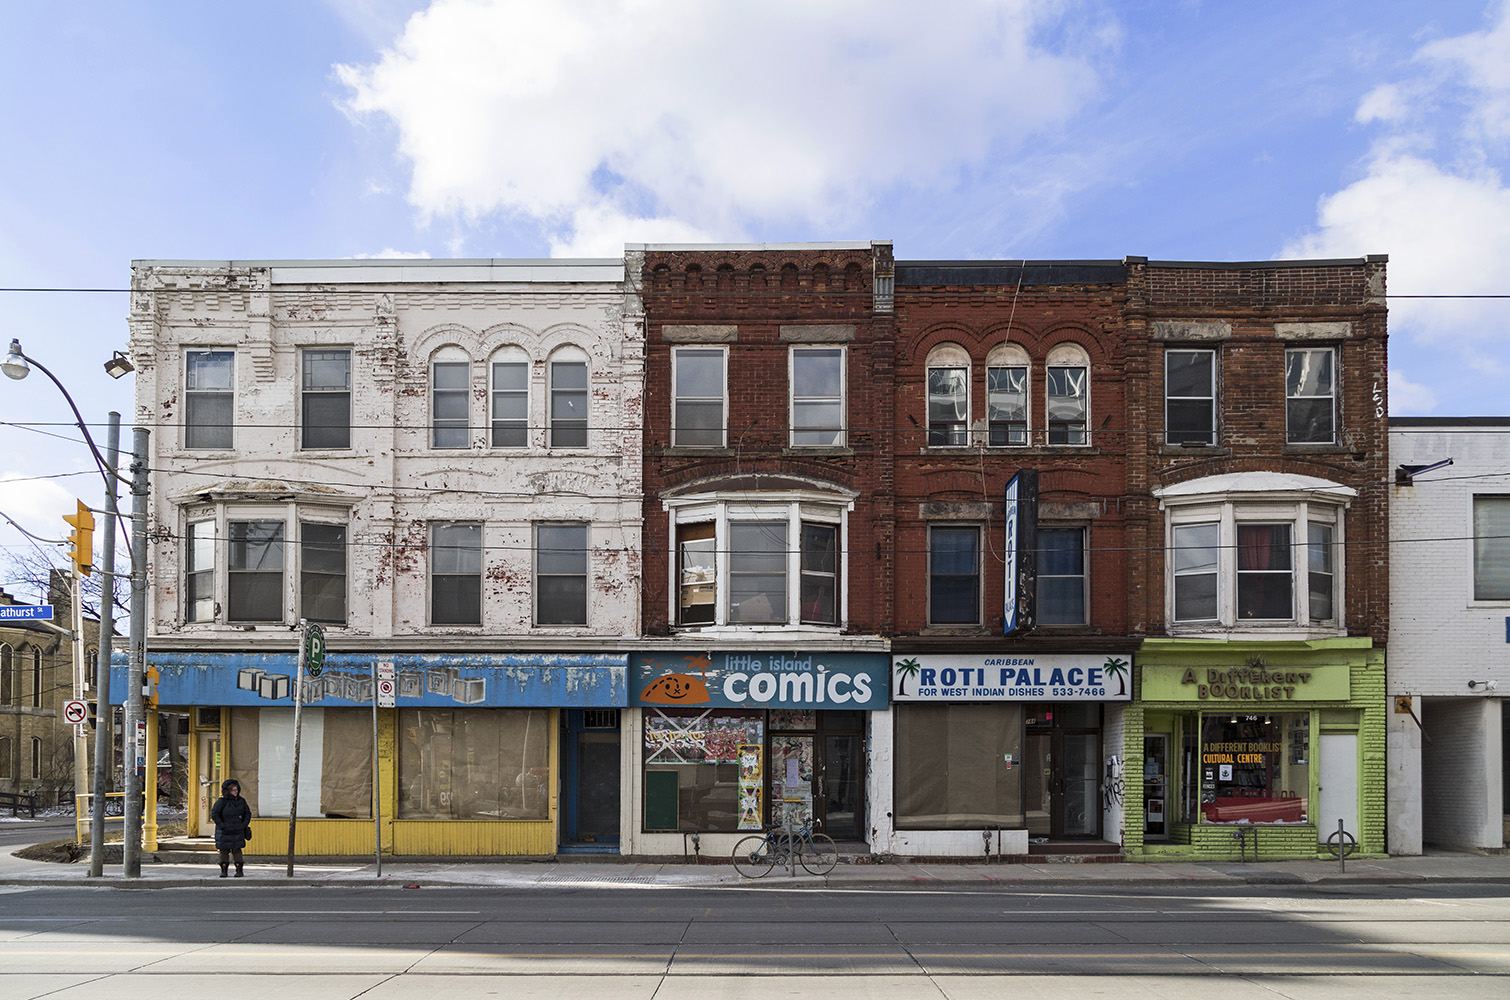 20170315. This row of buildings at 738-744 Bathurst St (at Lenno